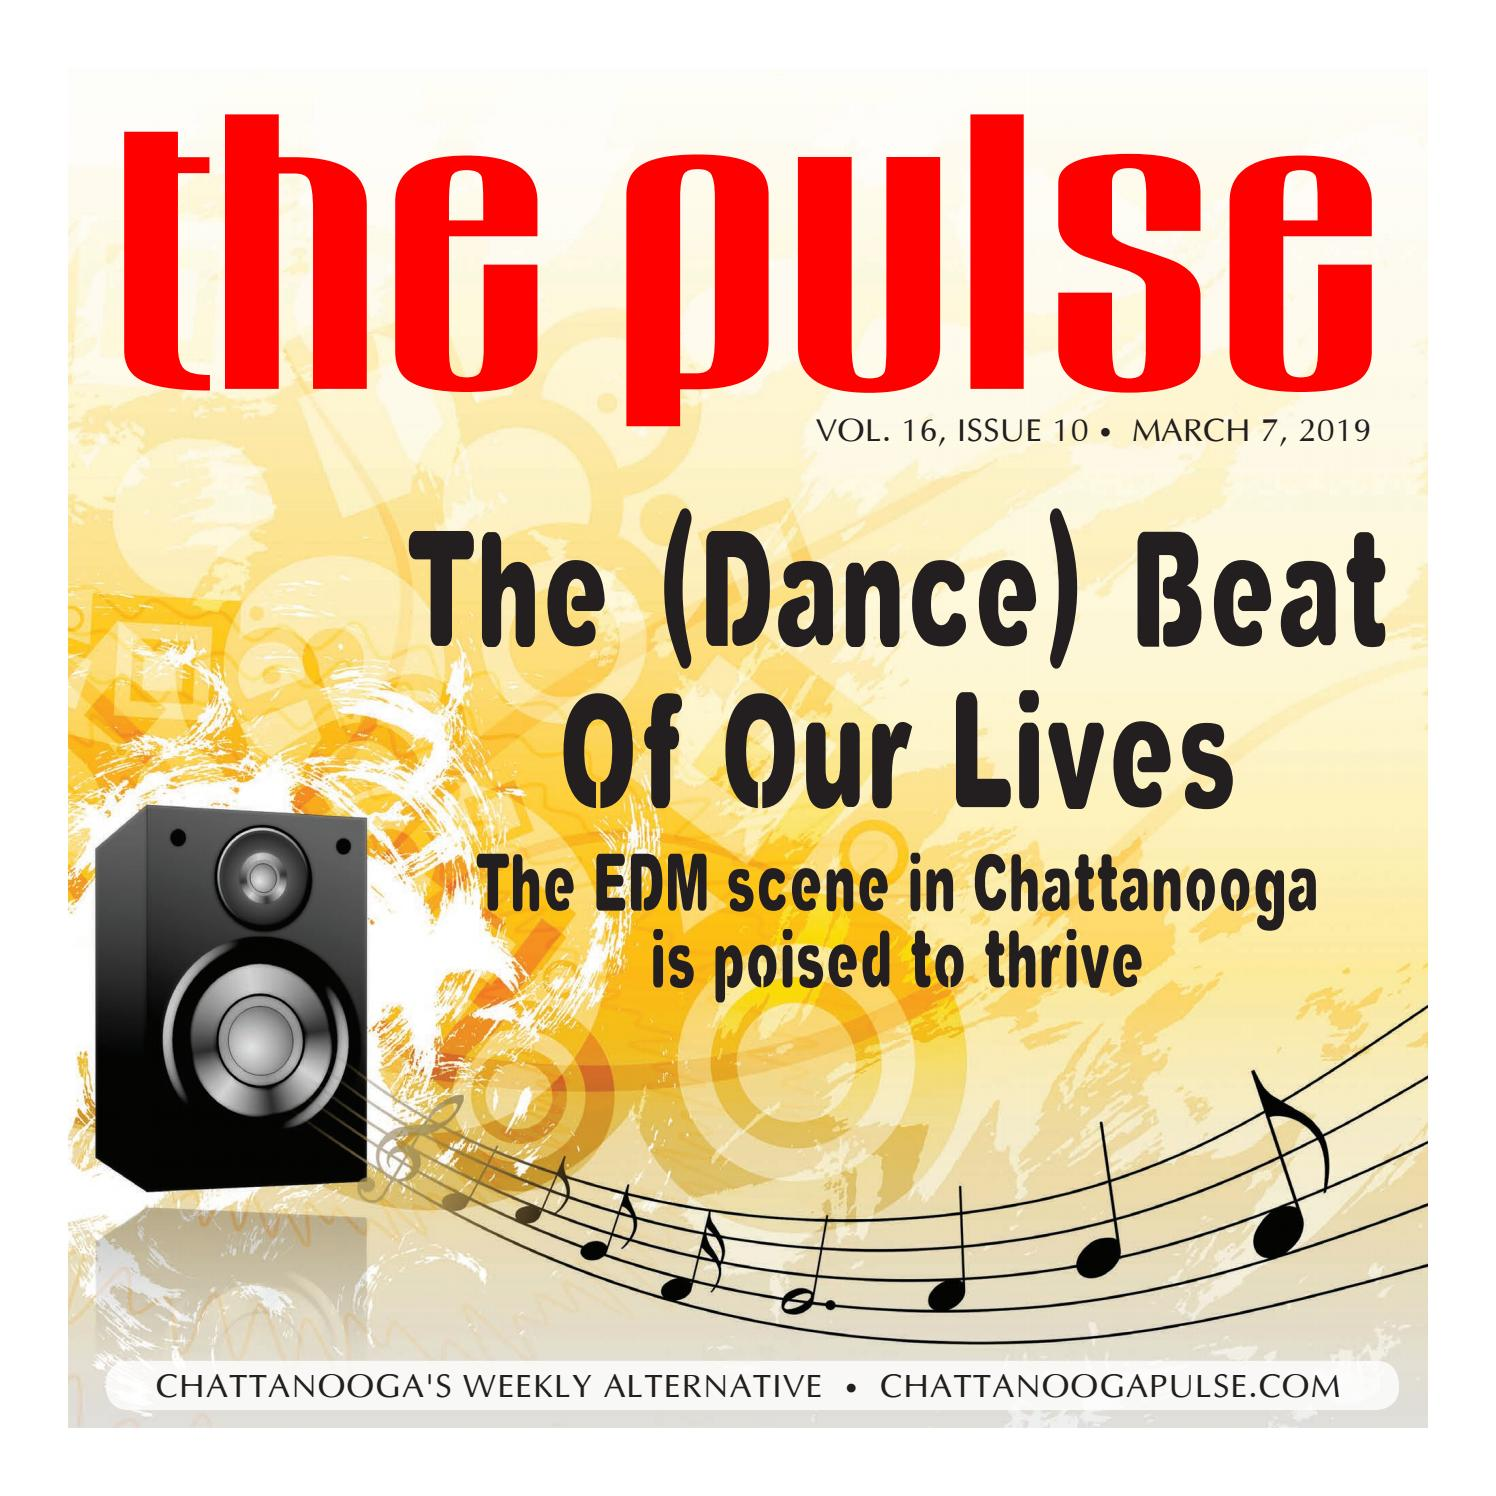 The Pulse 16 10 » March 7, 2019